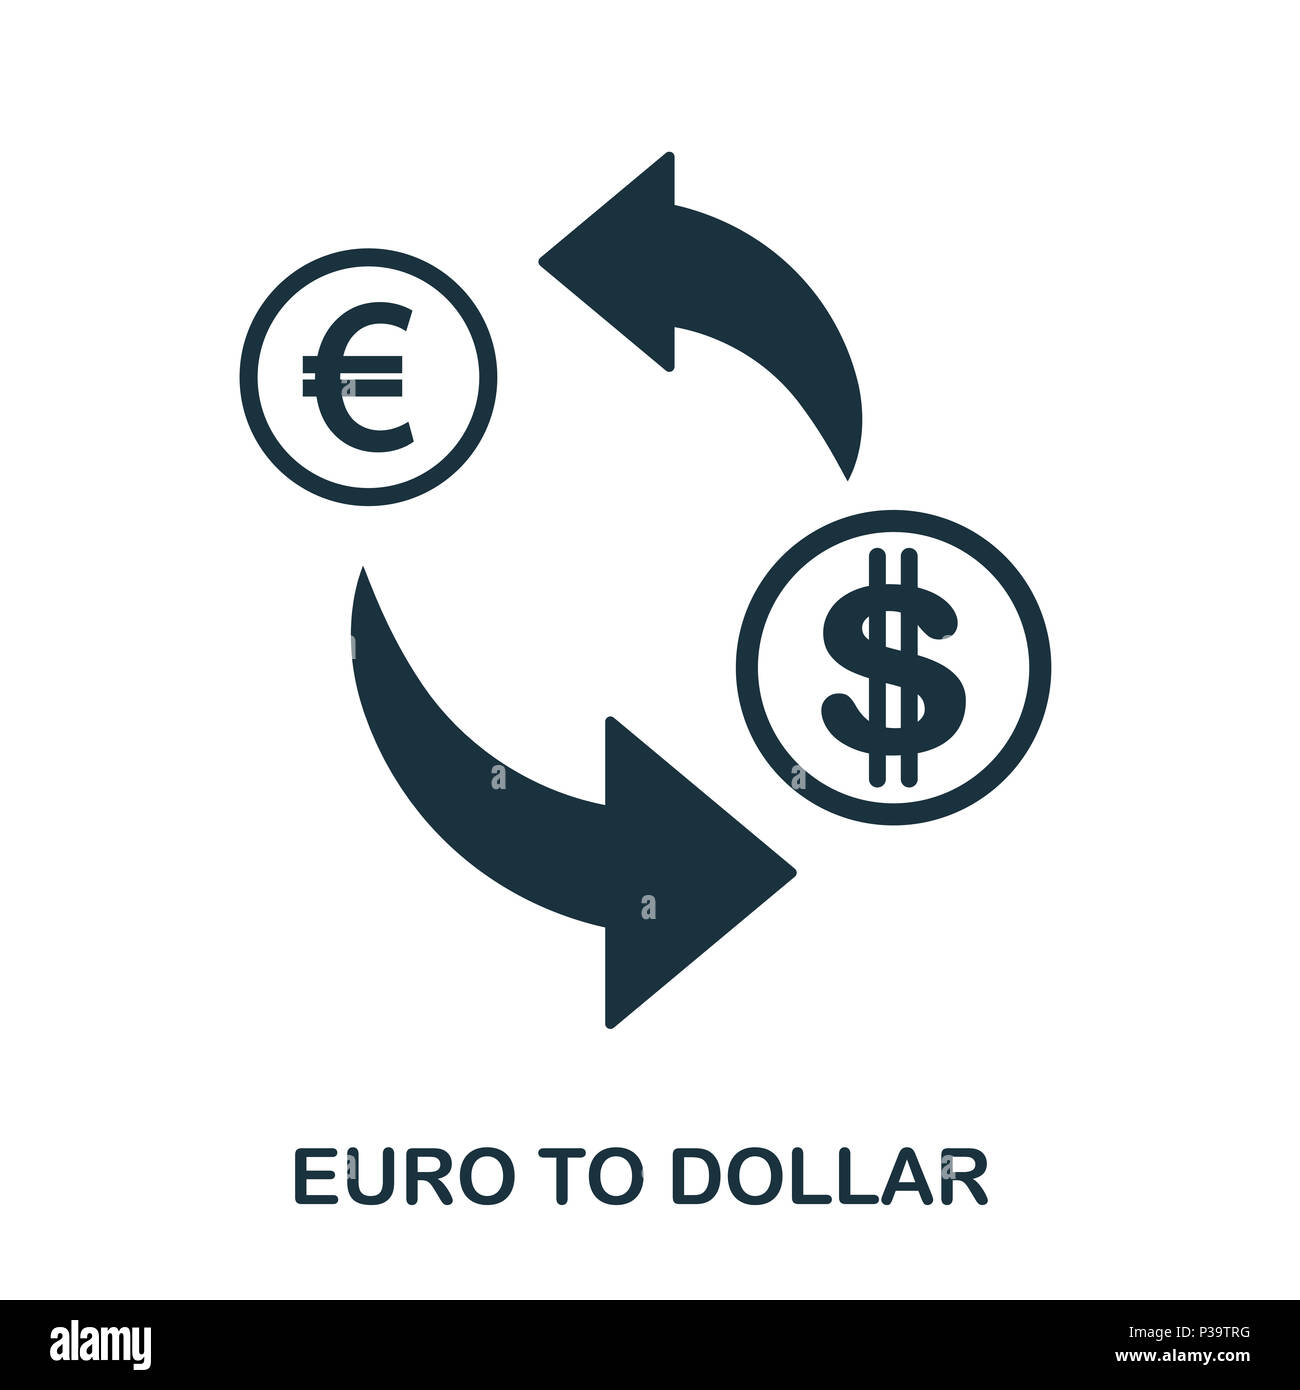 Euro To Dollar icon. Mobile app, printing, web site icon. Simple element sing. Monochrome Euro To Dollar icon illustration. Stock Photo